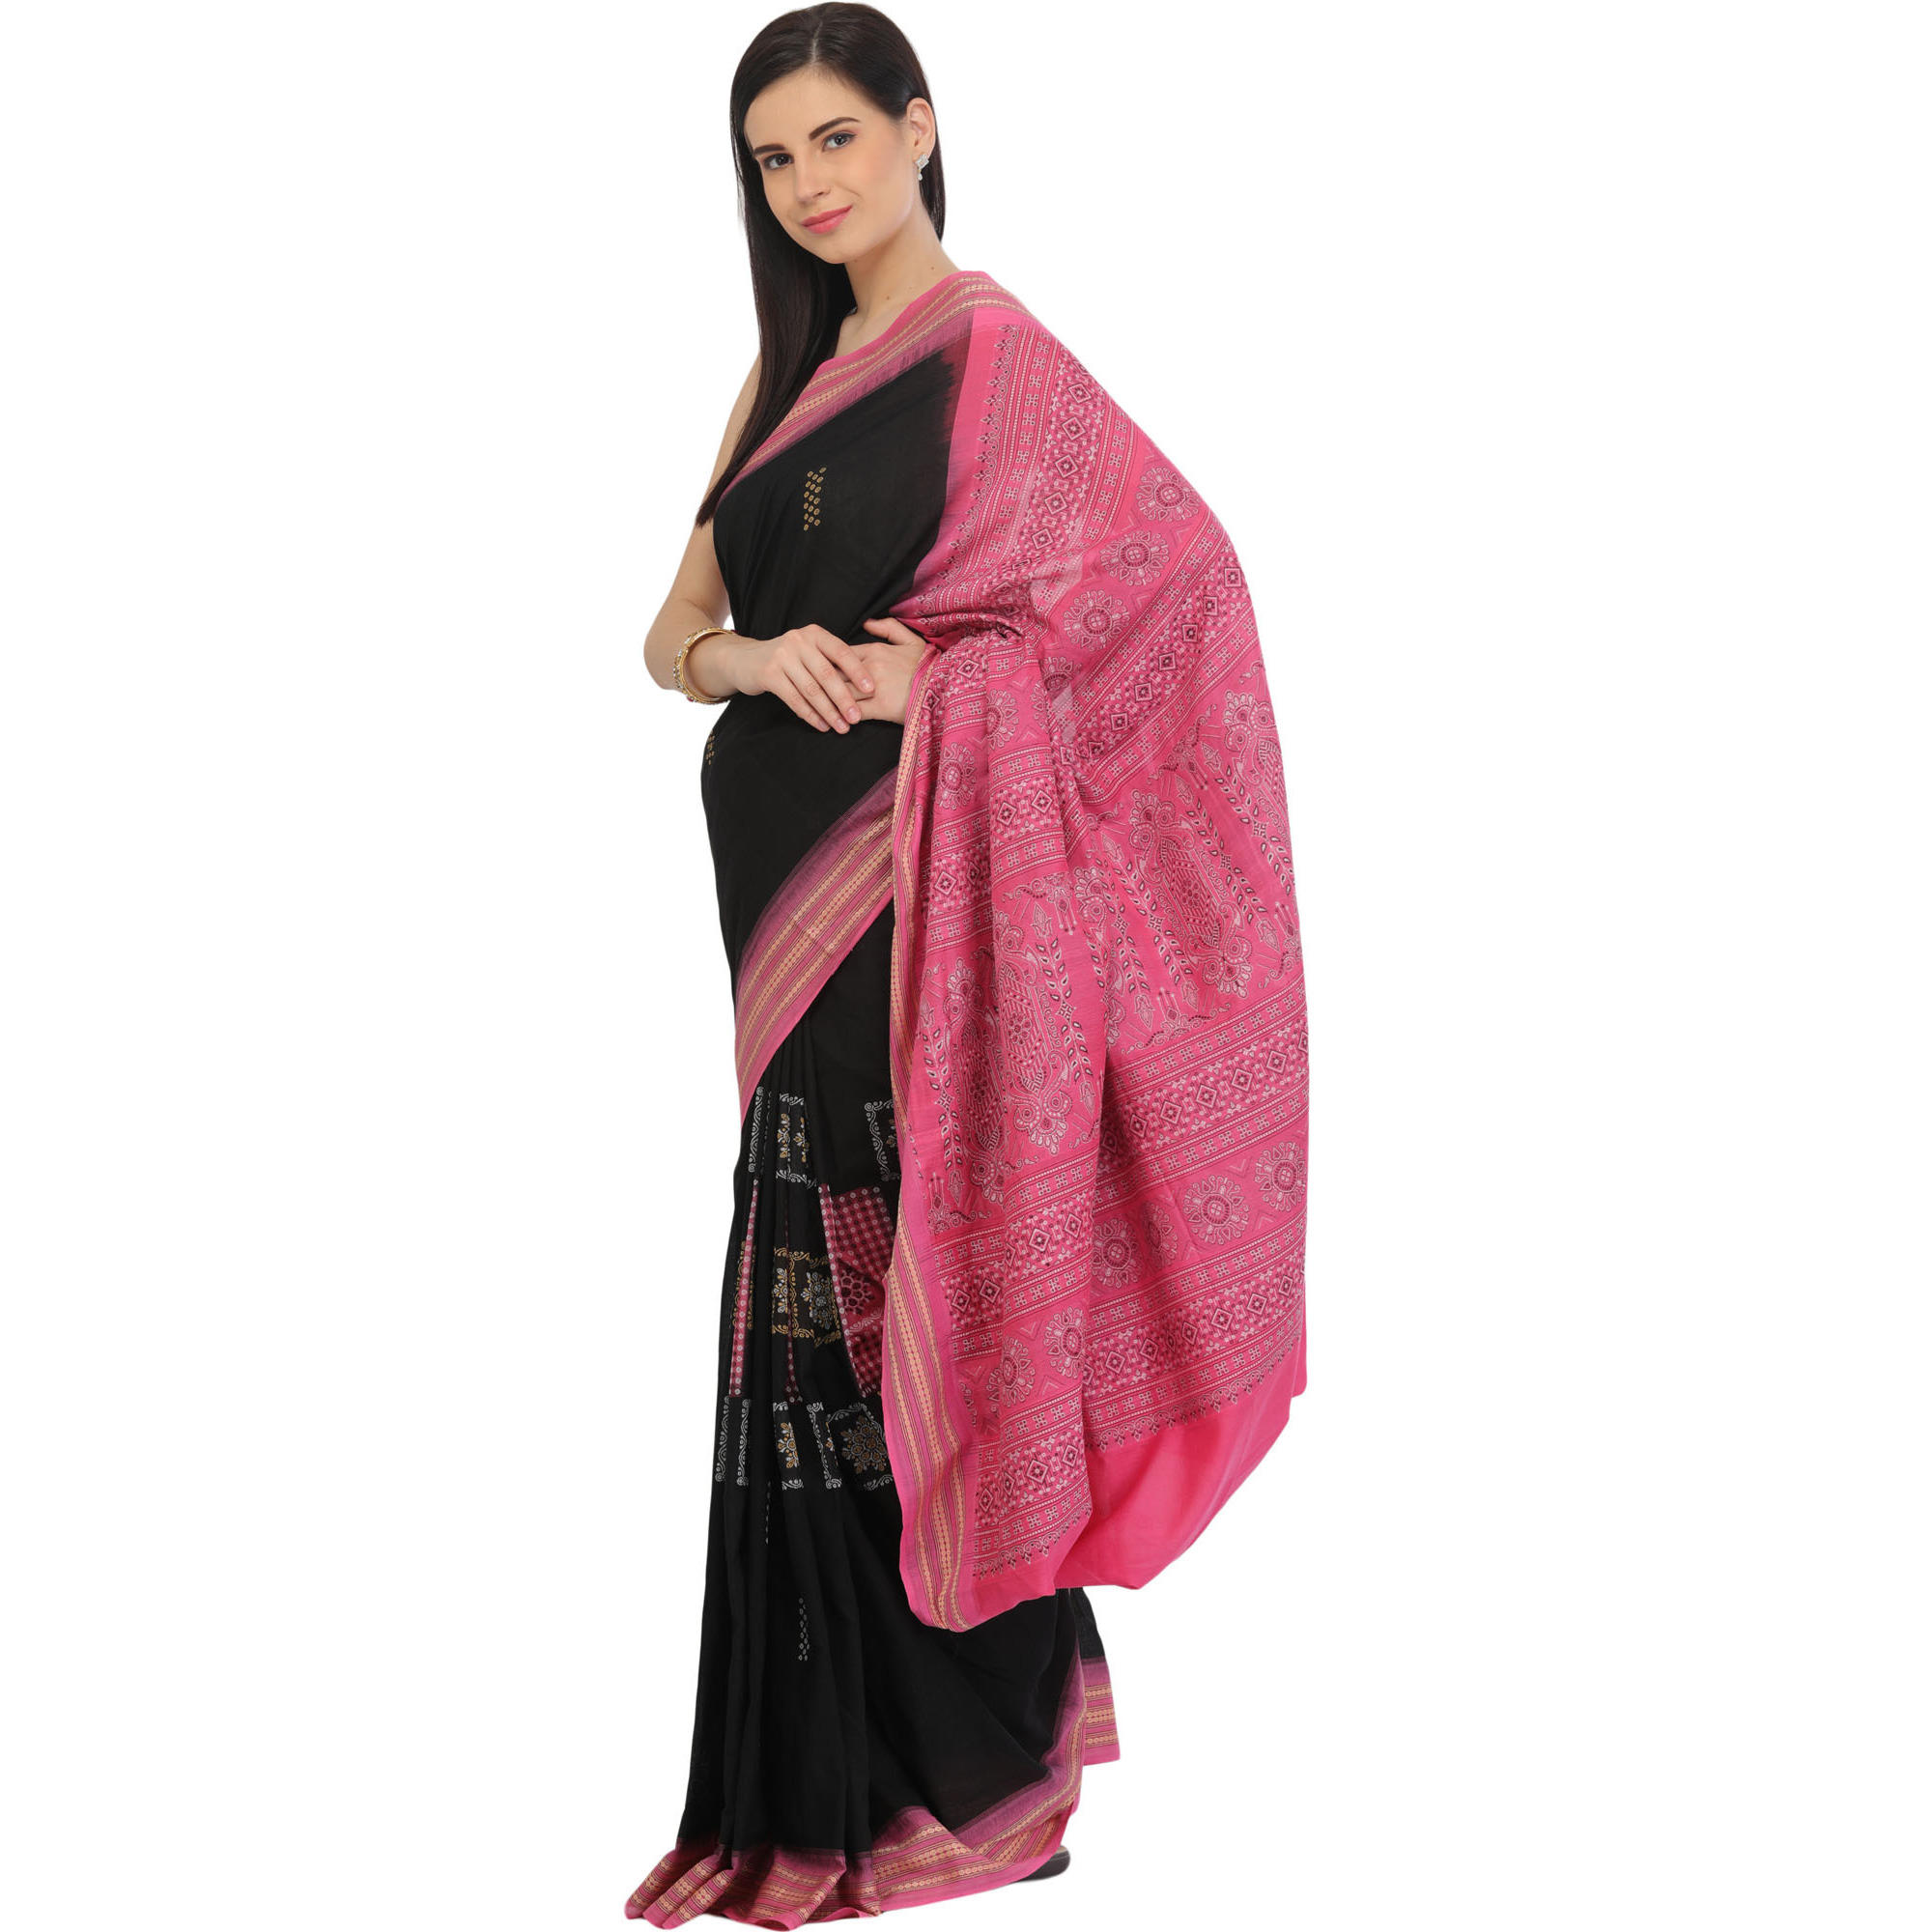 Black and Pink Bomkai Sari from Orissa with Dense Weave on Pallu and Rudraksha Border